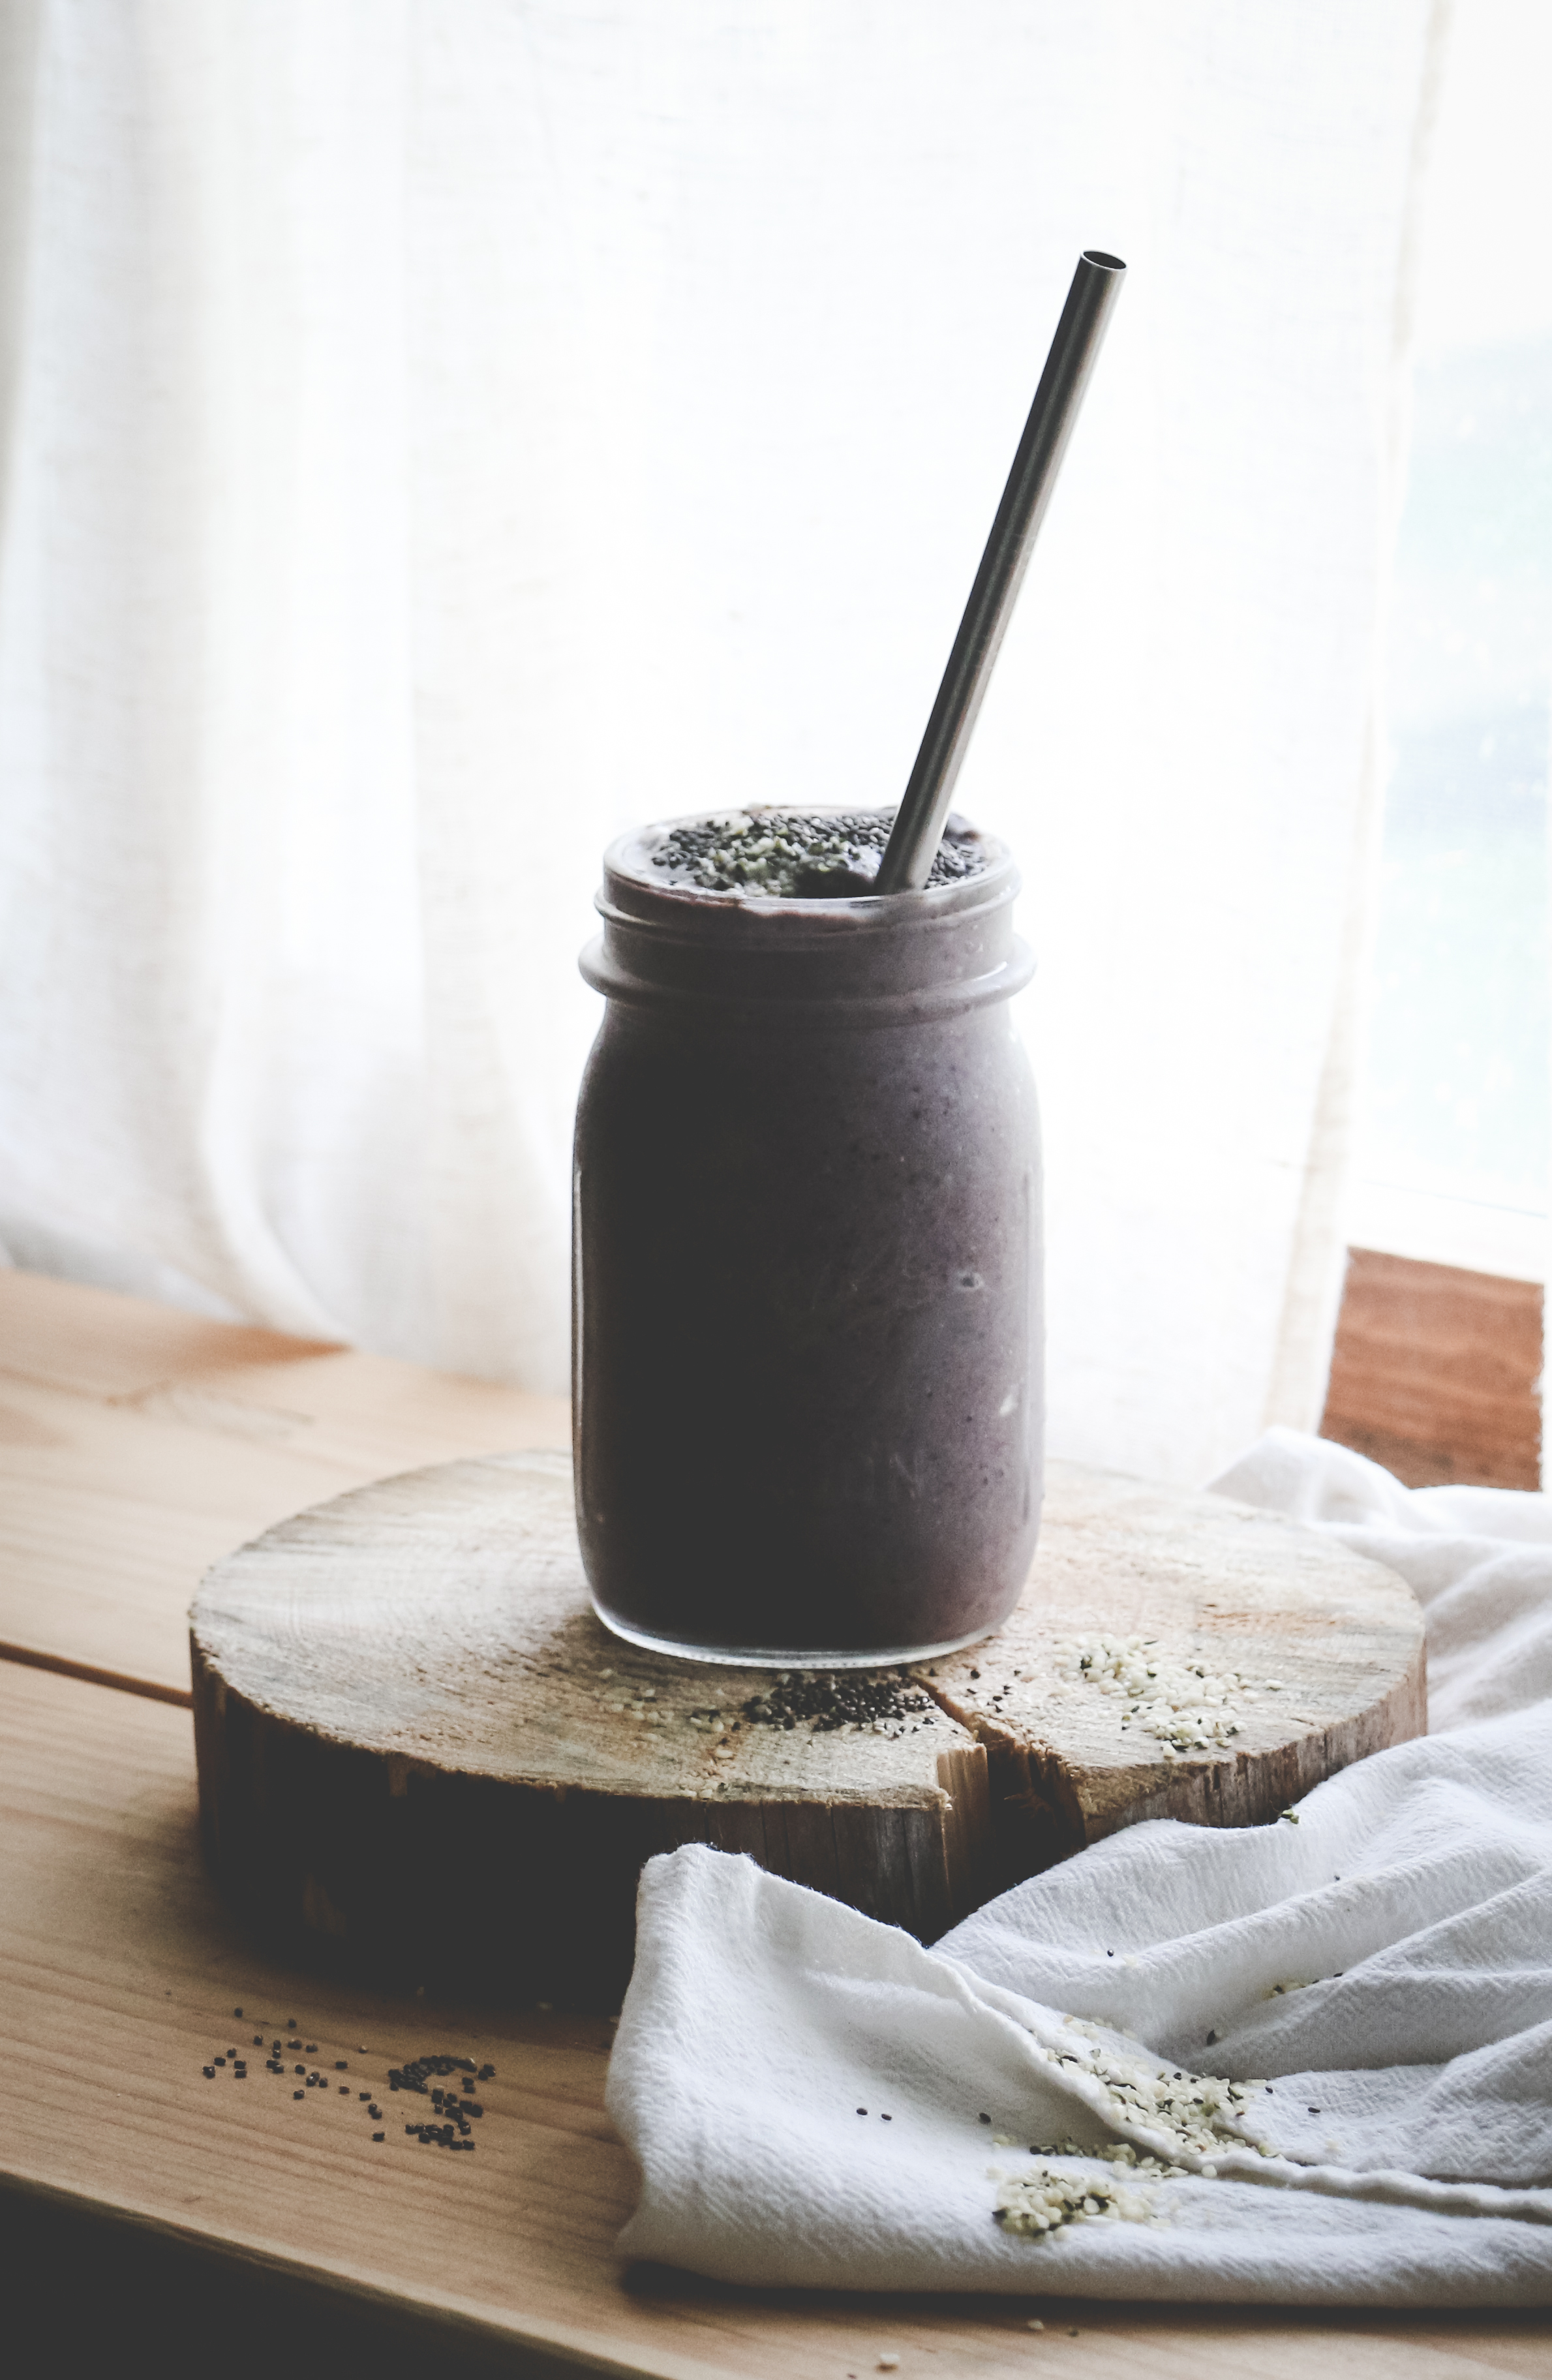 Blueberry-Cardamom Smoothie